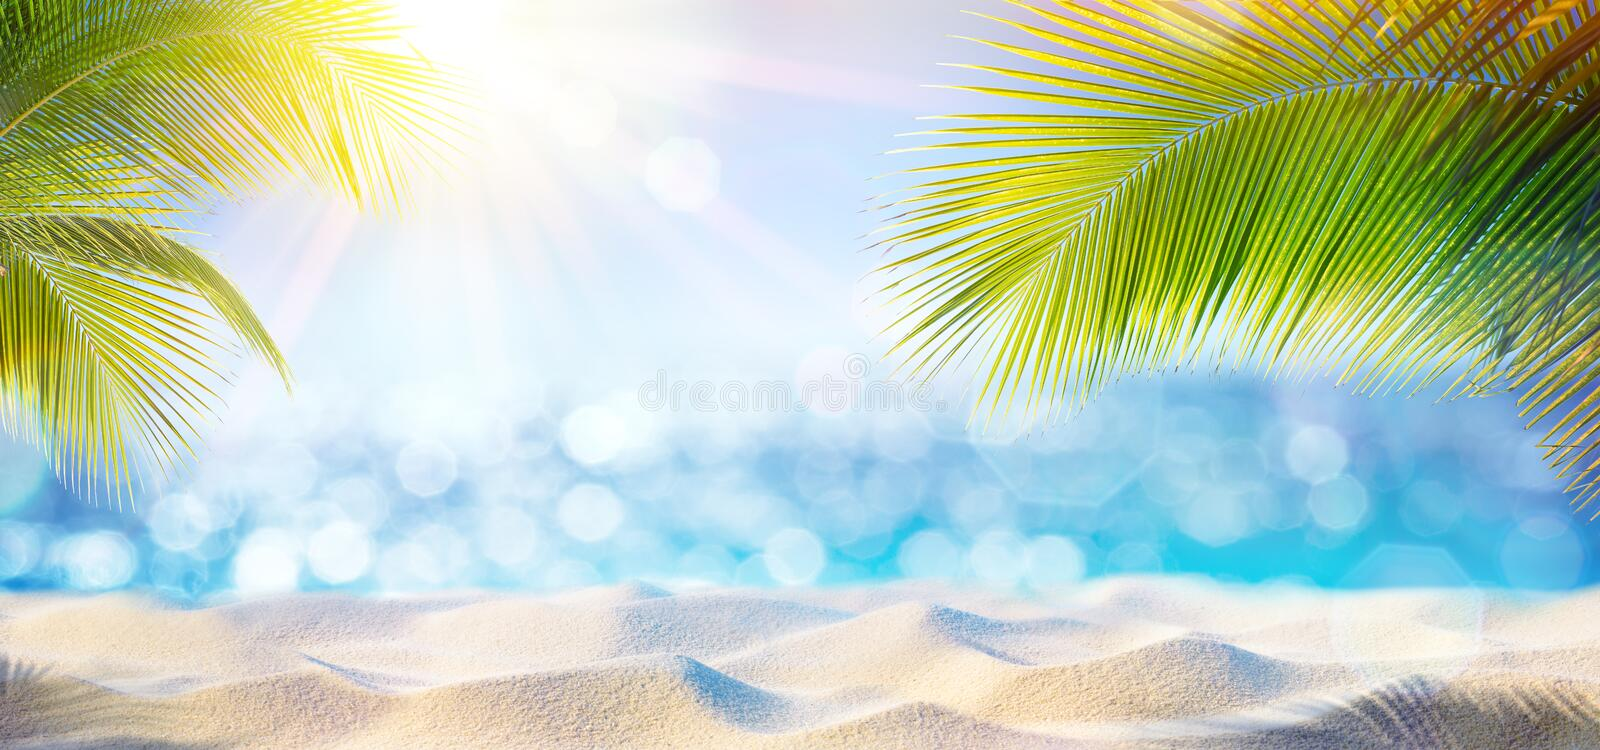 Abstract Beach Background - Sunny Sand And Shiny Sea. At Shadows Of Palm Tree stock image